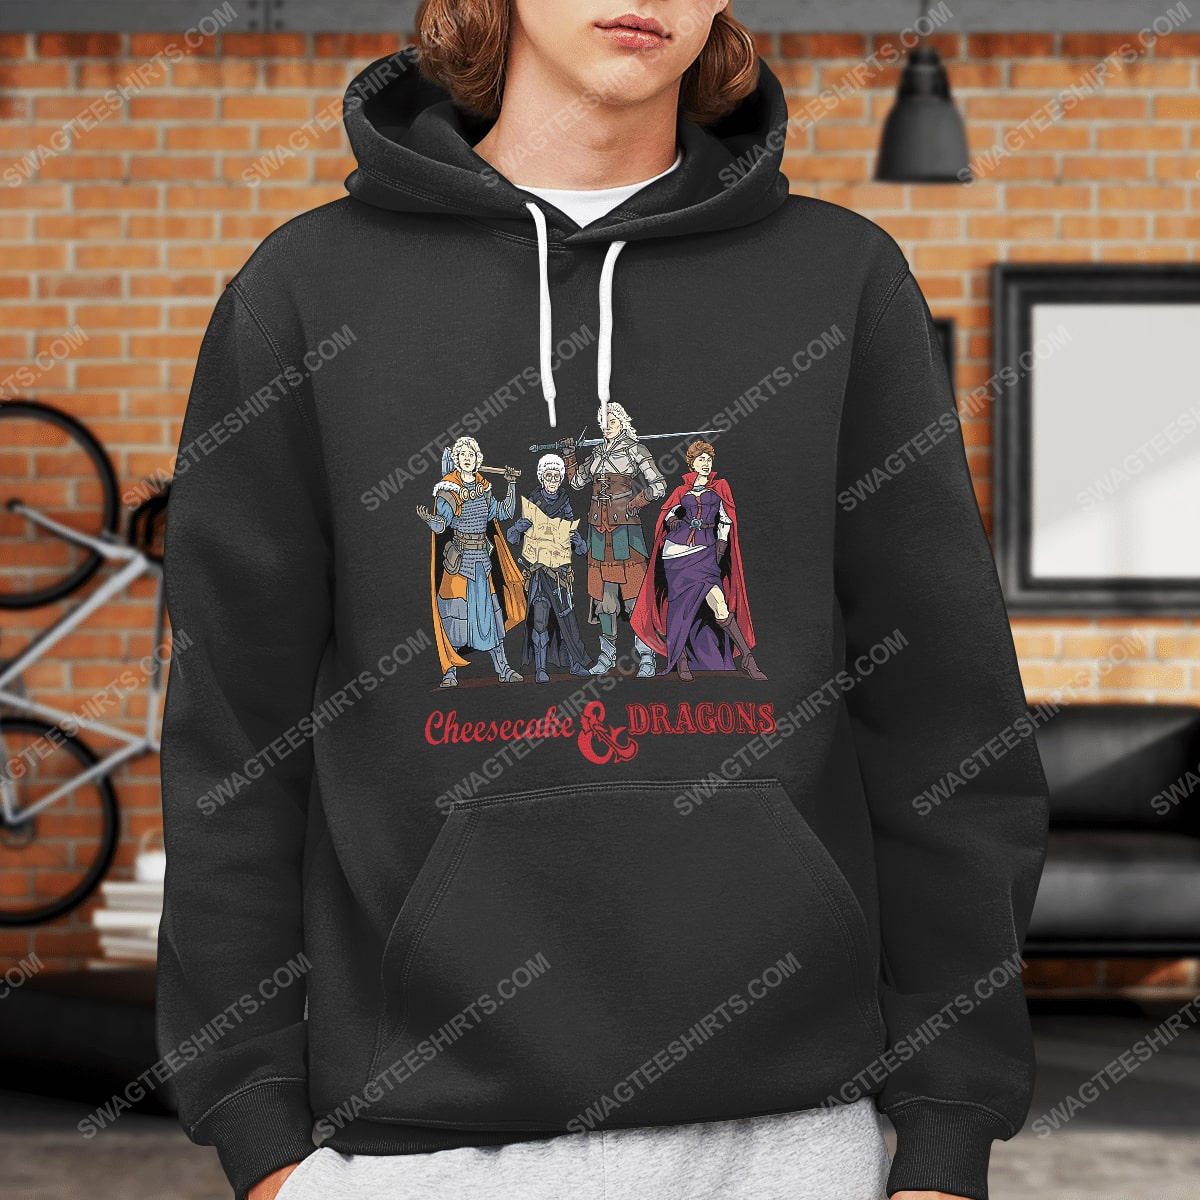 Cheesecake and dragons dungeons the golden girls hoodie 1(1)